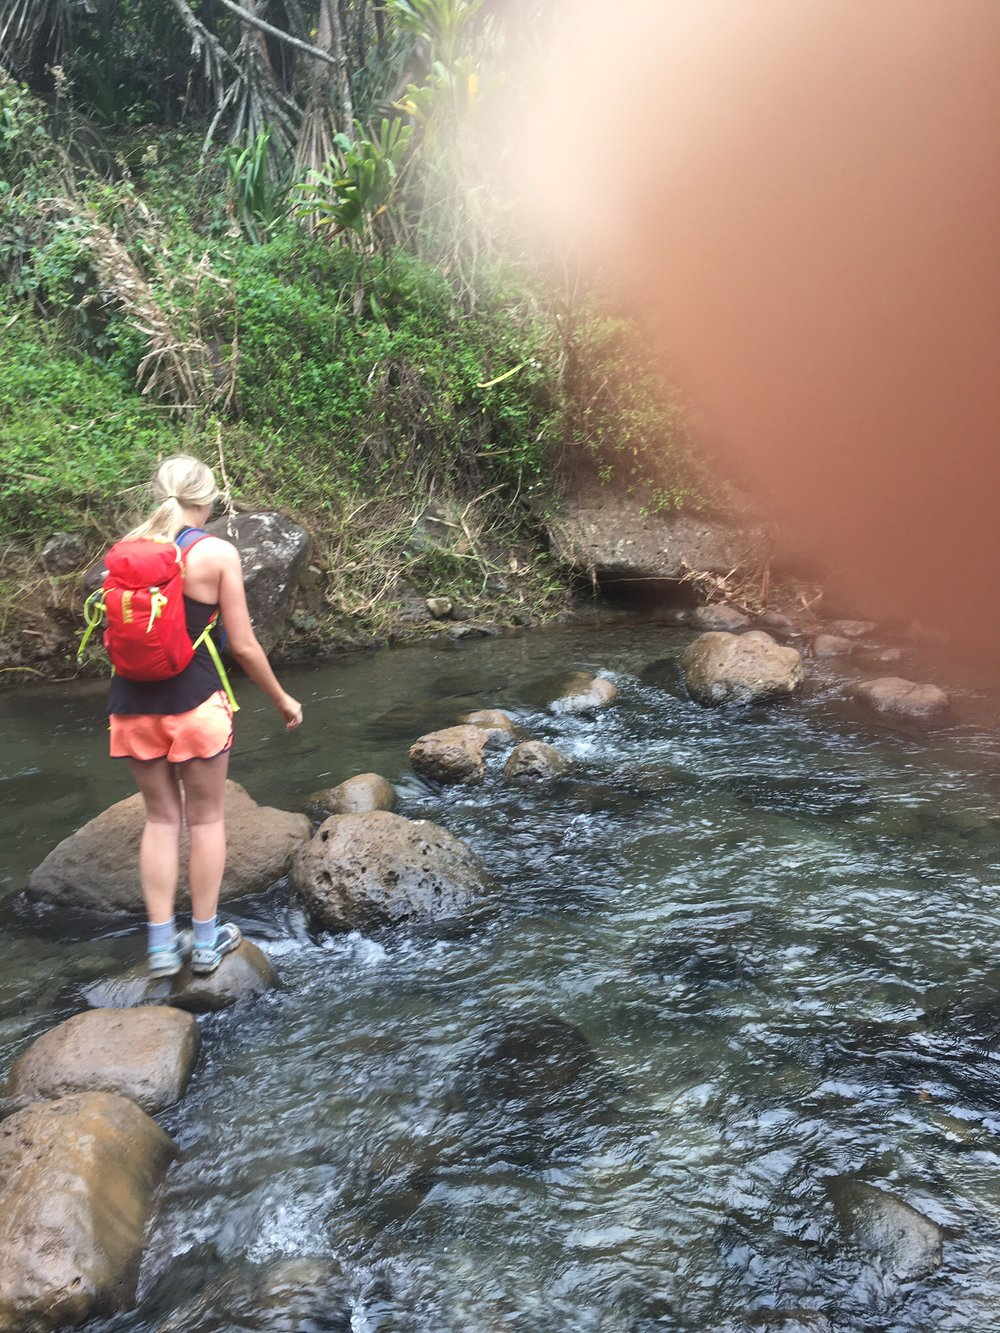 the only picture of either of us crossing the stream. this portion of the trail is no joke